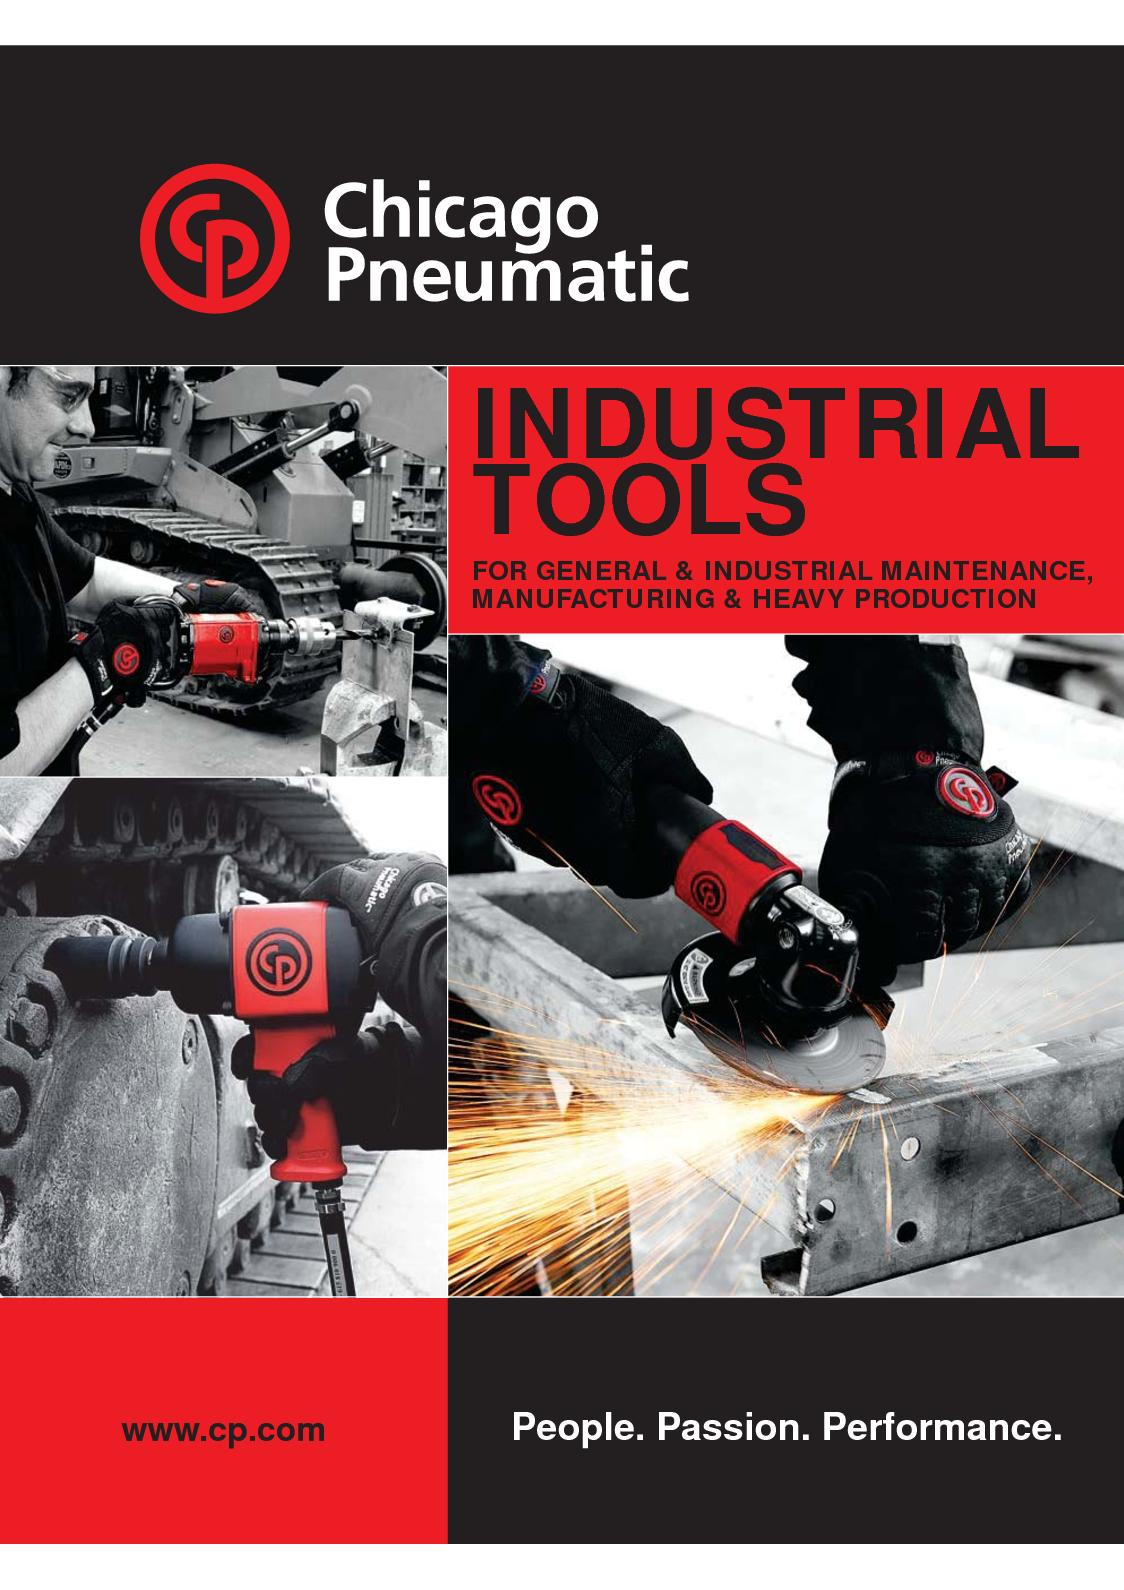 Chicago Pneumatic 874 High-Speed Cutting Tool